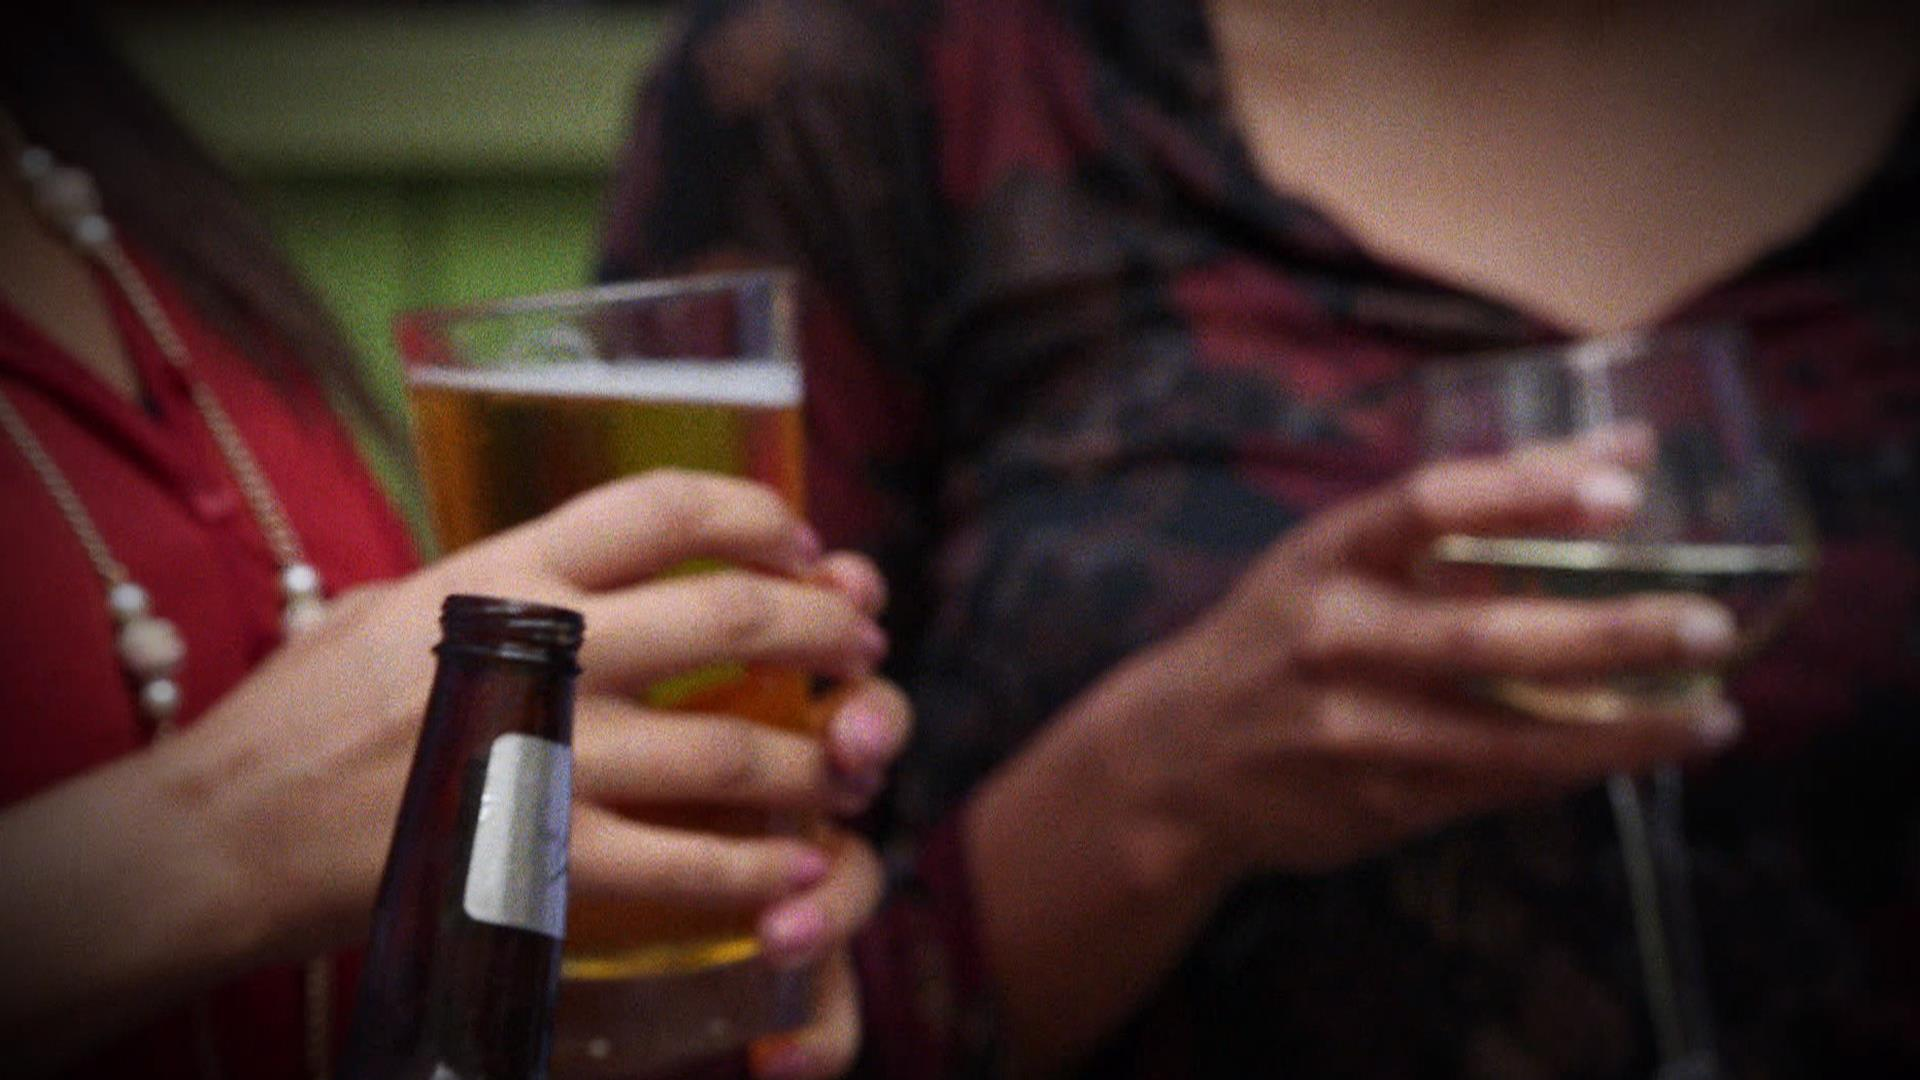 CDC Warning to Women About Alcohol Stirs Outrage